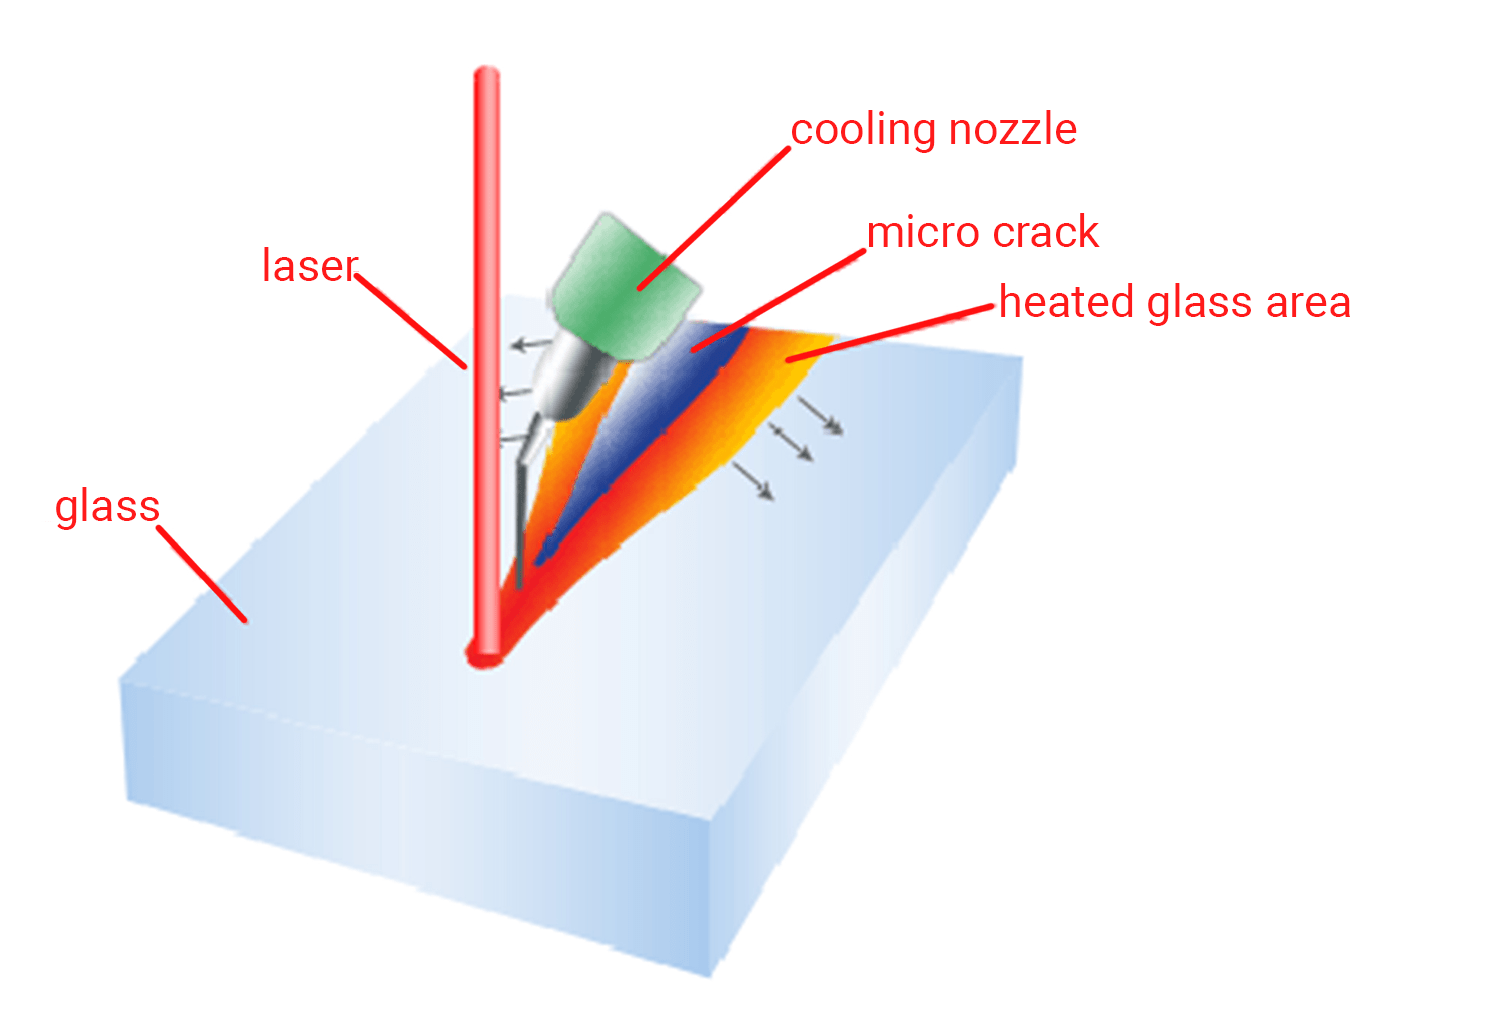 cutting glass with a laser